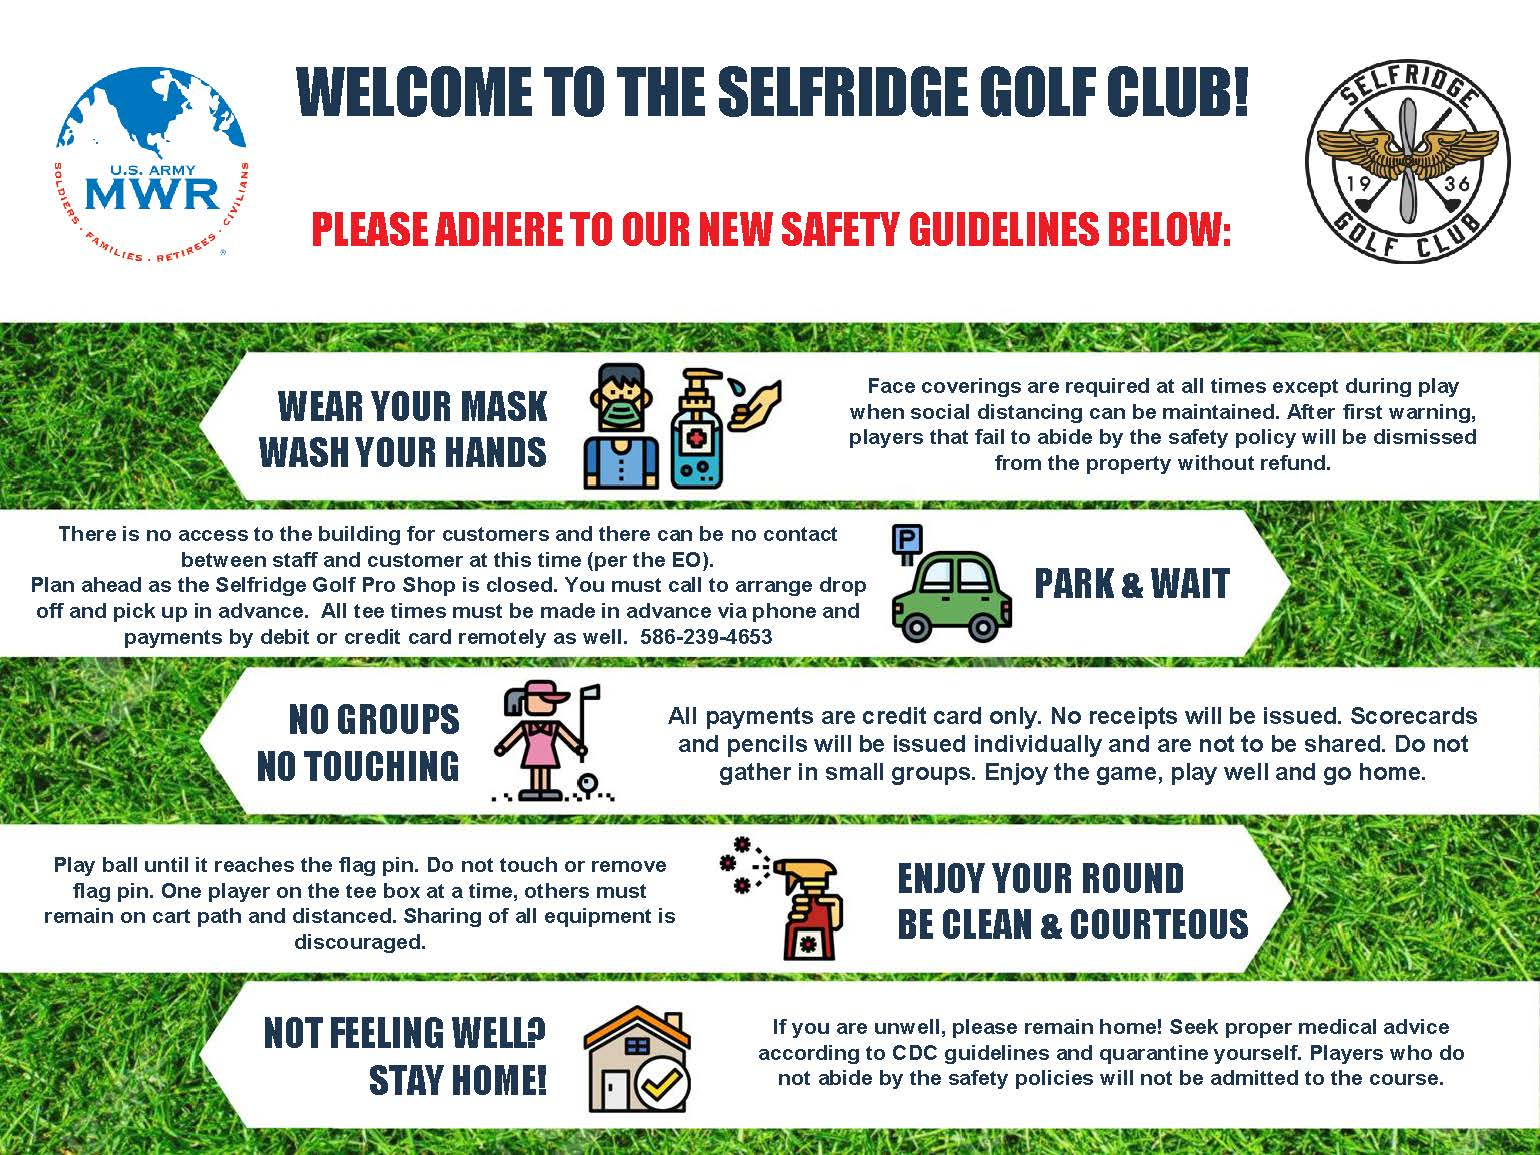 DTA_202 Selfridge Golf infographic CoVid19.jpg